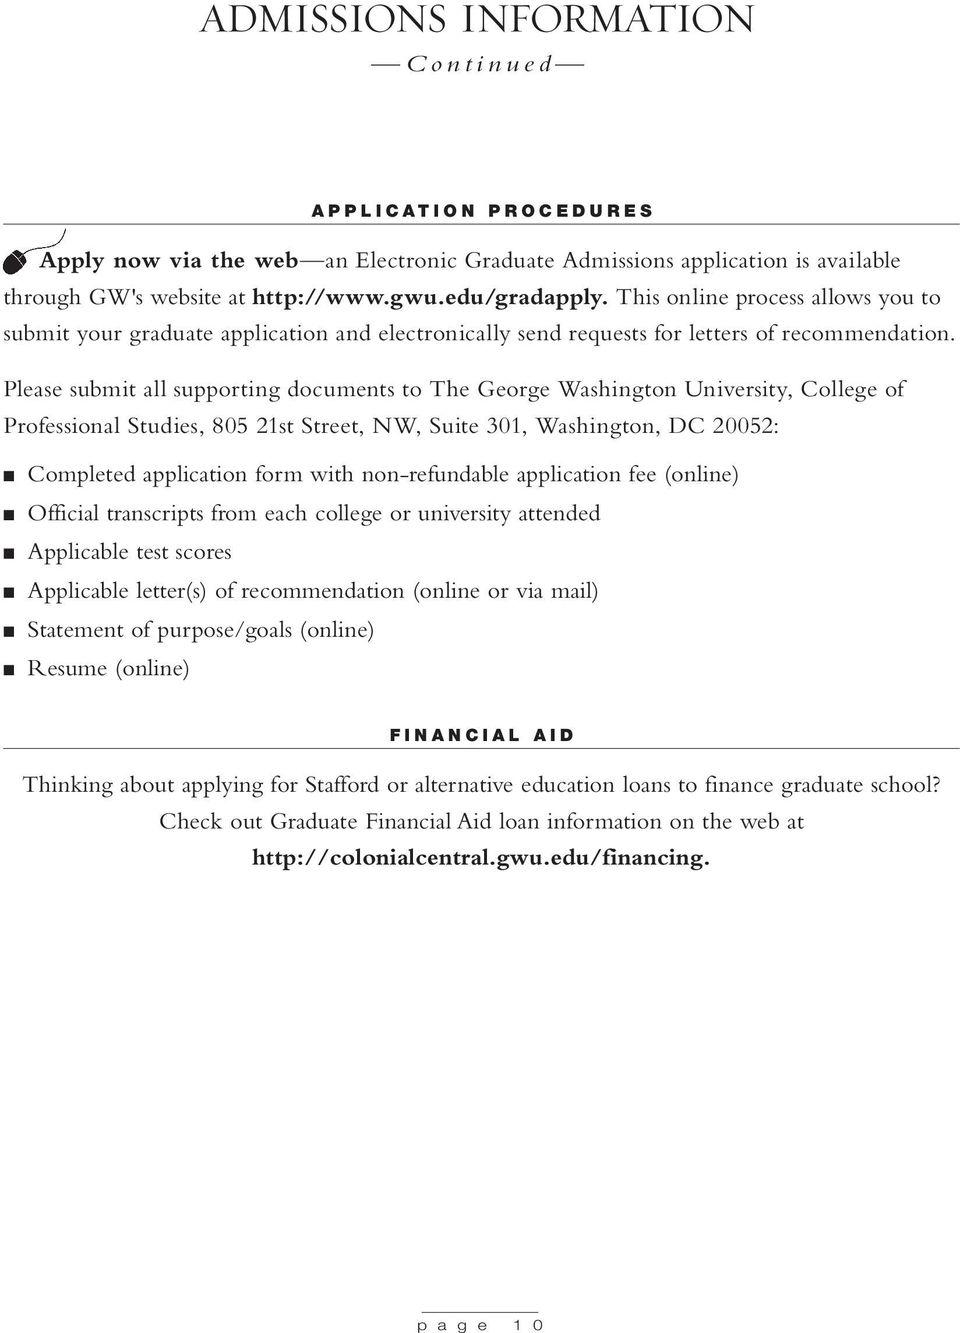 Please submit all supporting documents to The George Washington University, College of Professional Studies, 805 21st Street, NW, Suite 301, Washington, DC 20052: Completed application form with non-